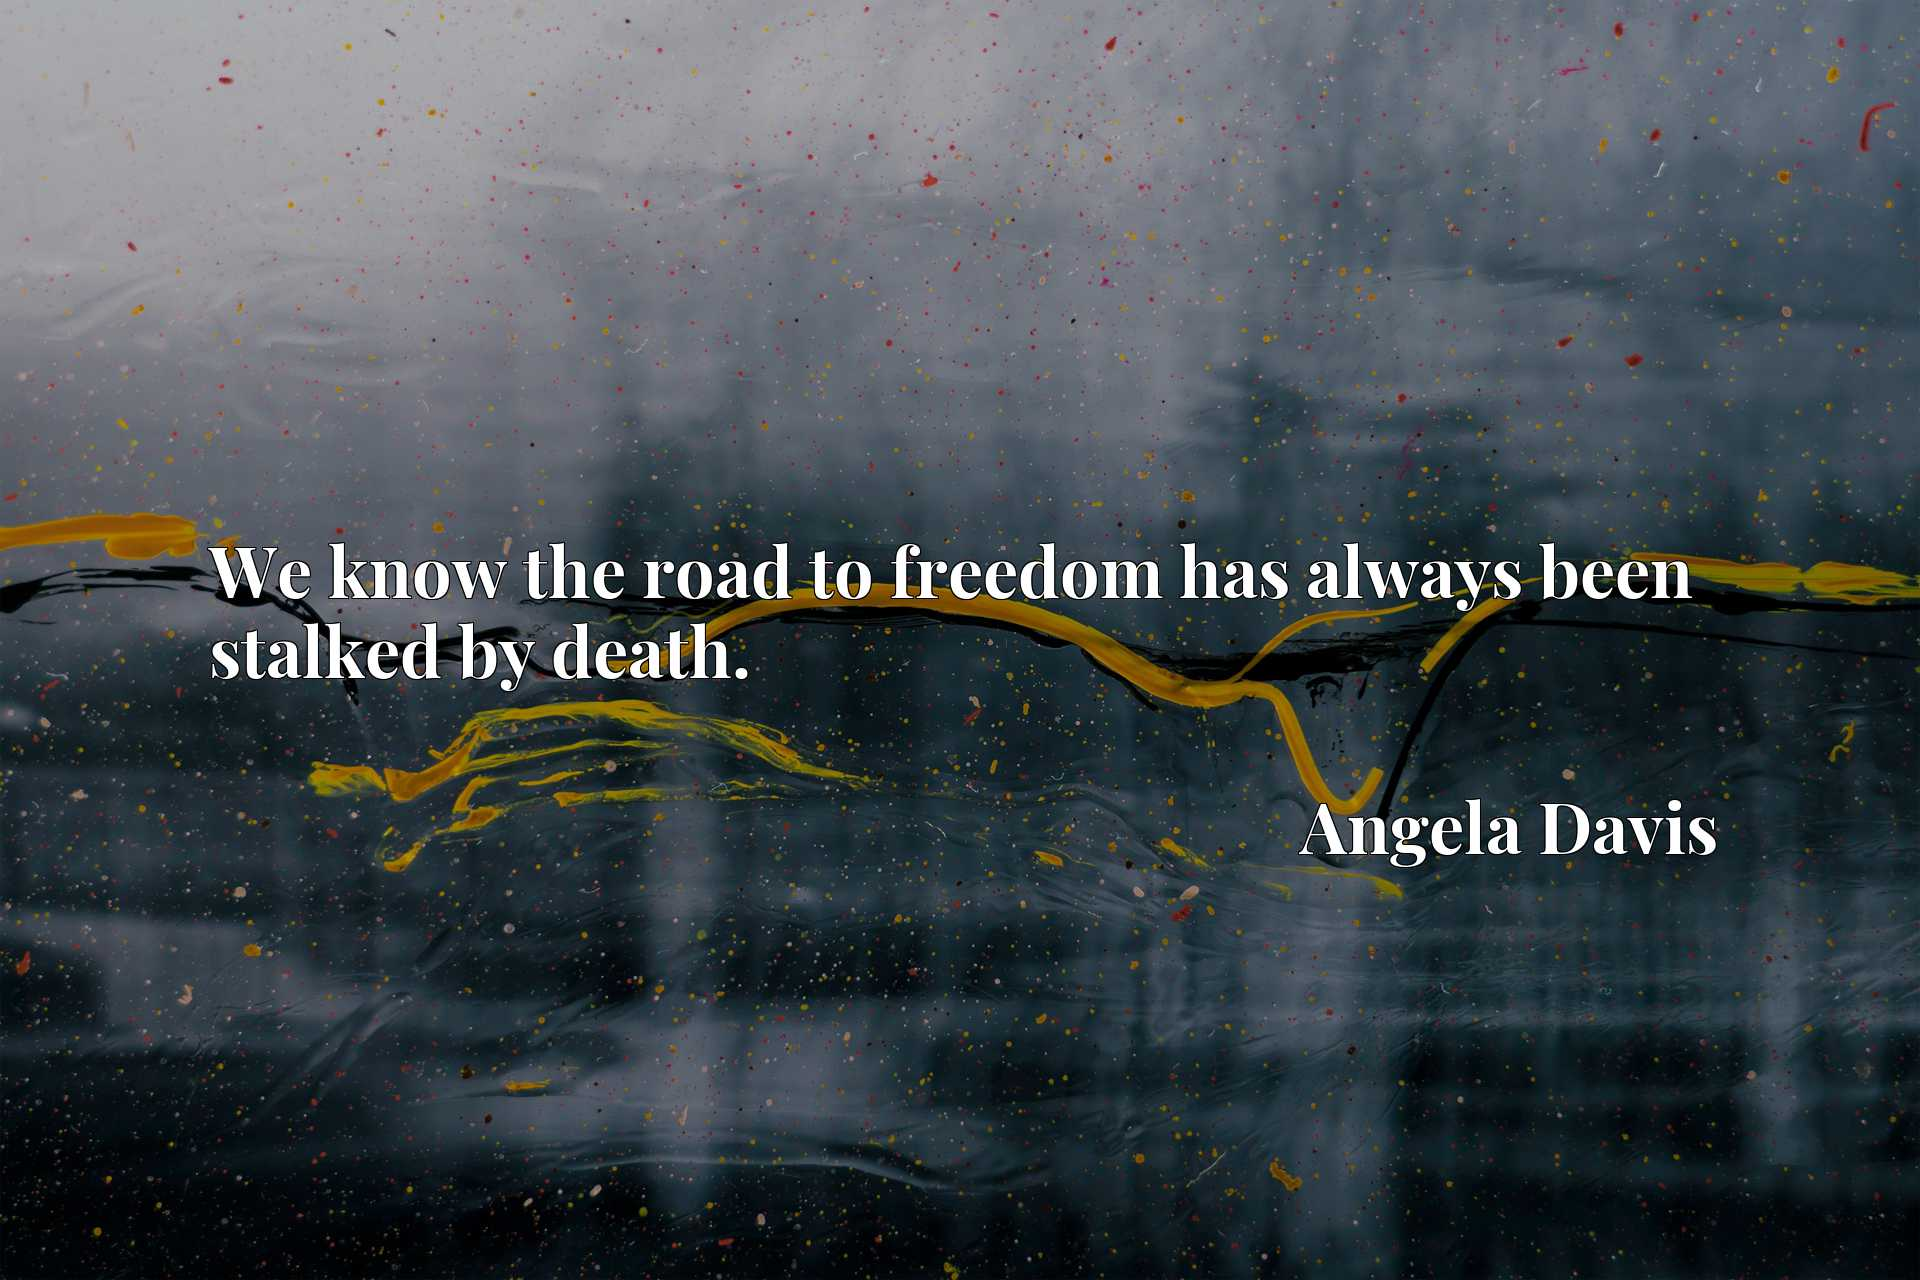 We know the road to freedom has always been stalked by death.